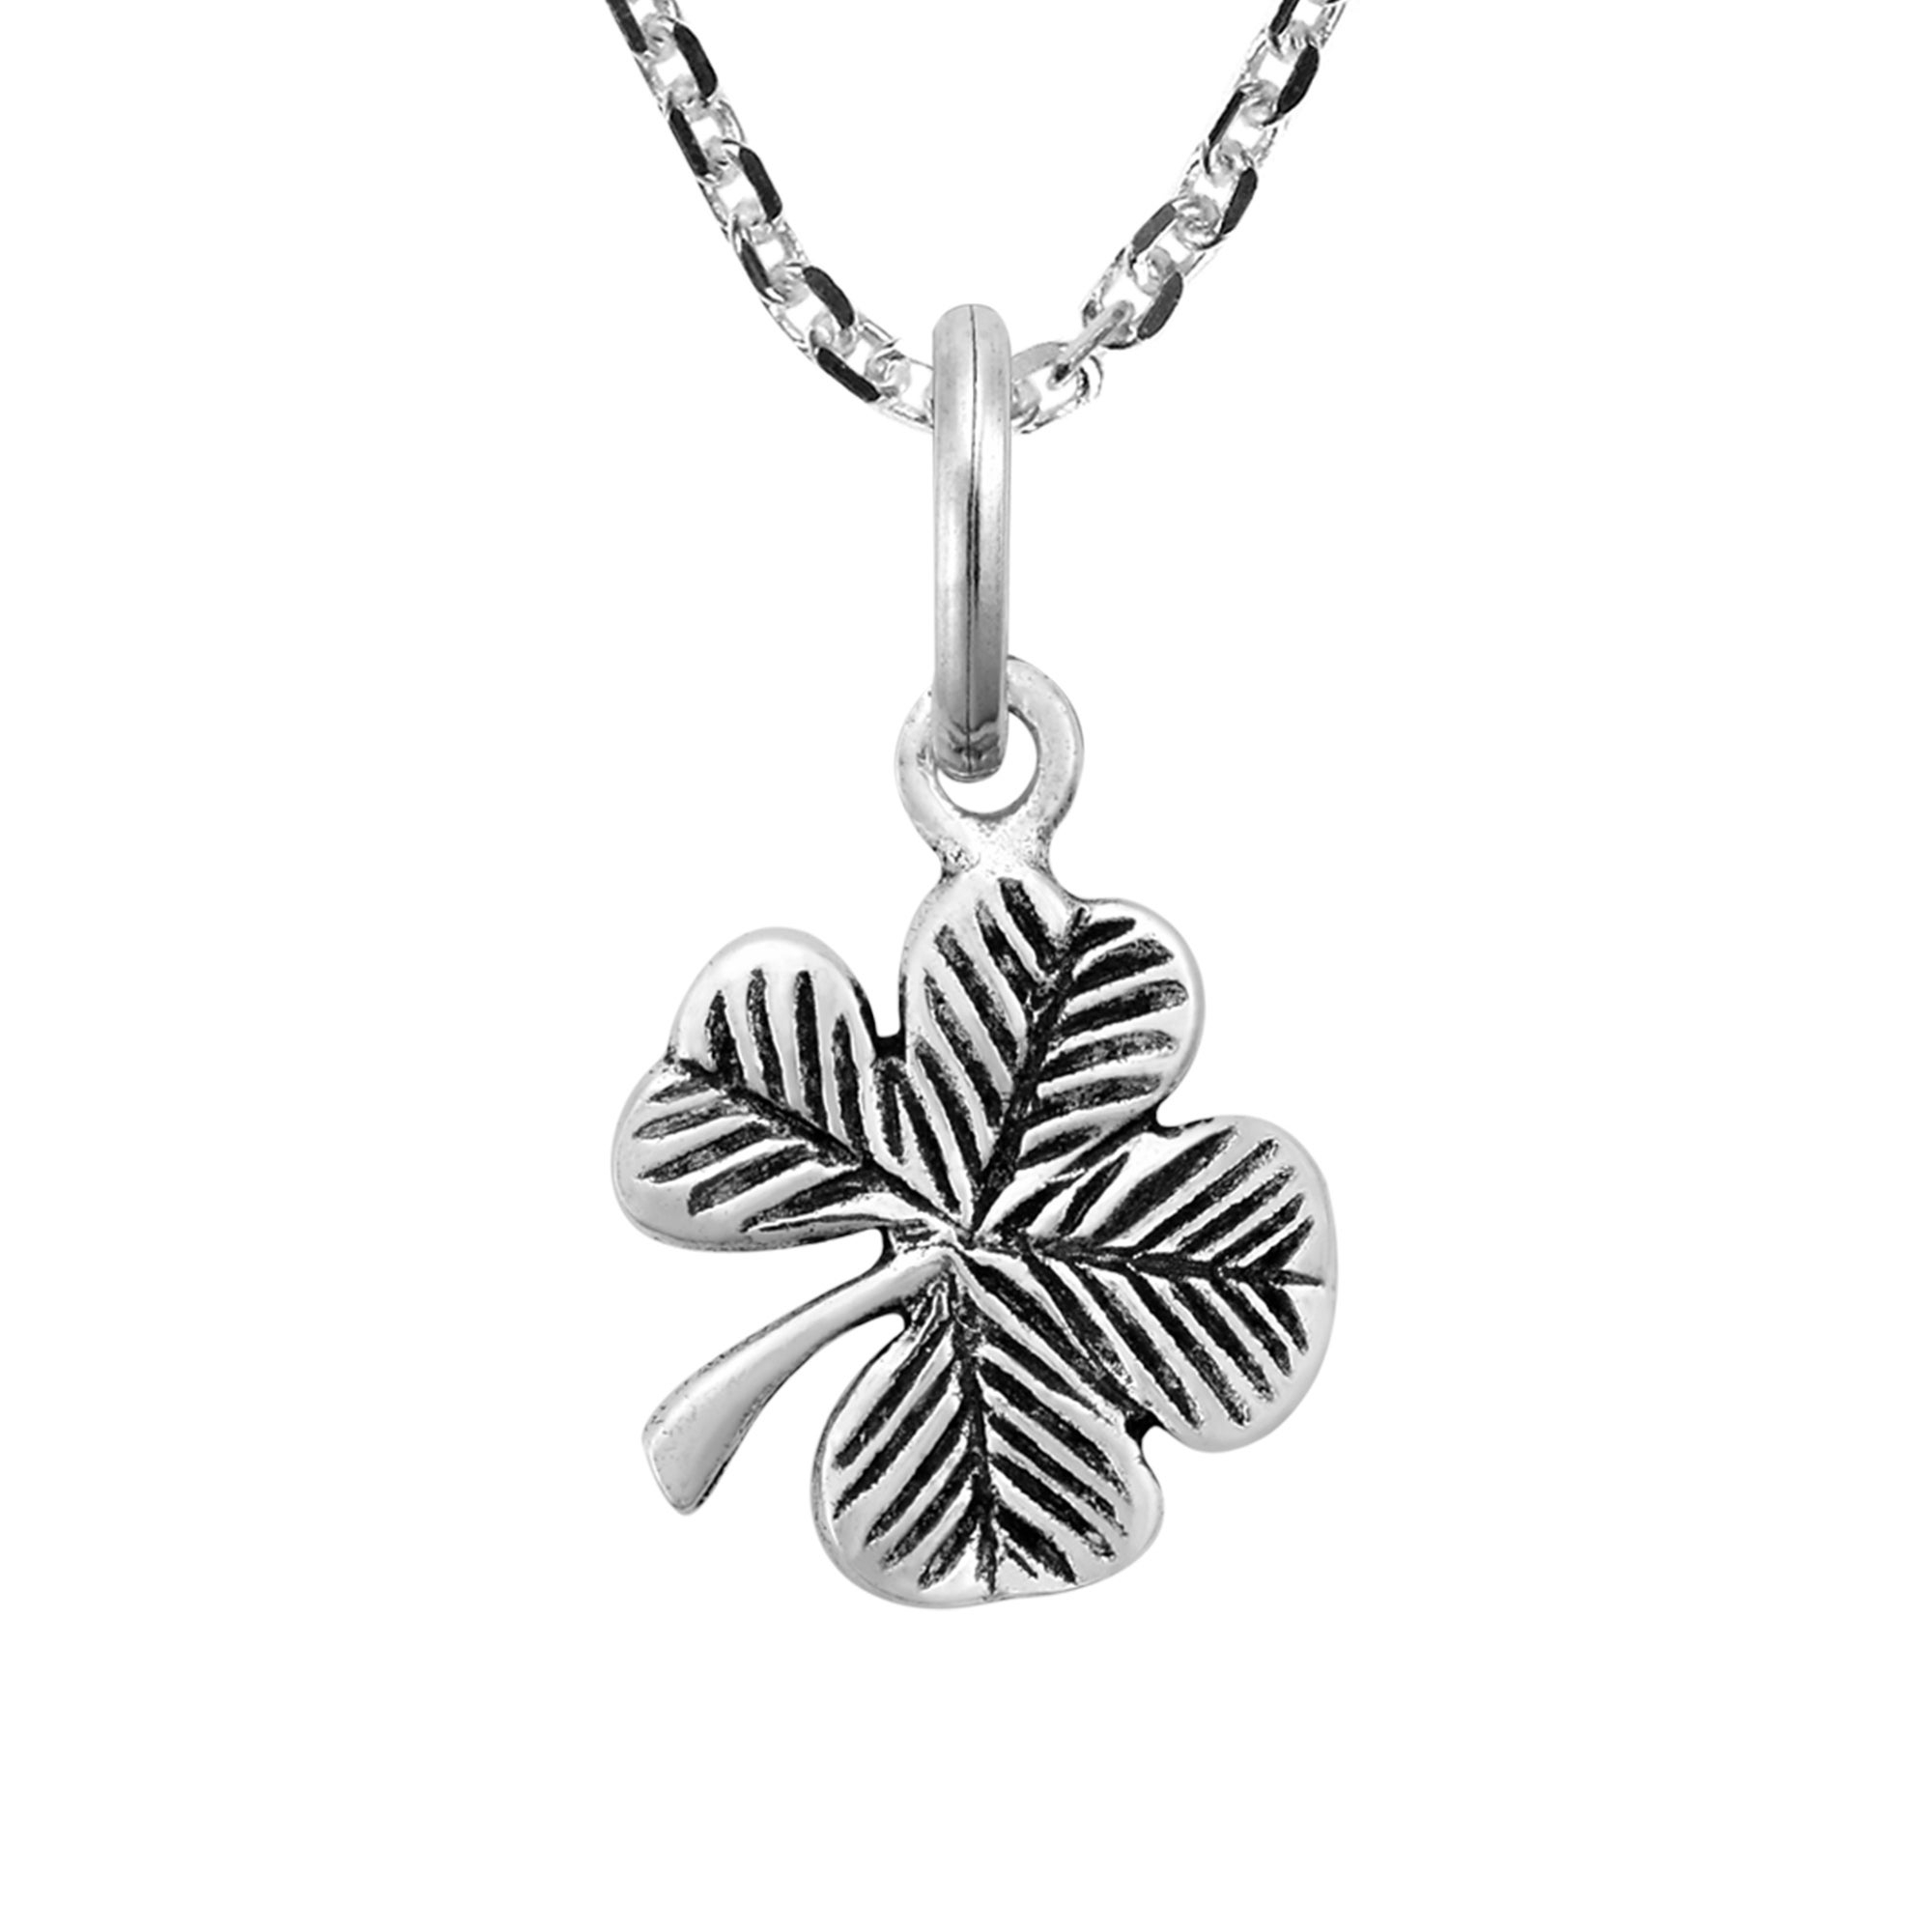 Shop Handmade Lucky Charm Sterling Silver Four Leaf Clover Pendant With Current Lucky Four Leaf Clover Pendant Necklaces (View 13 of 25)